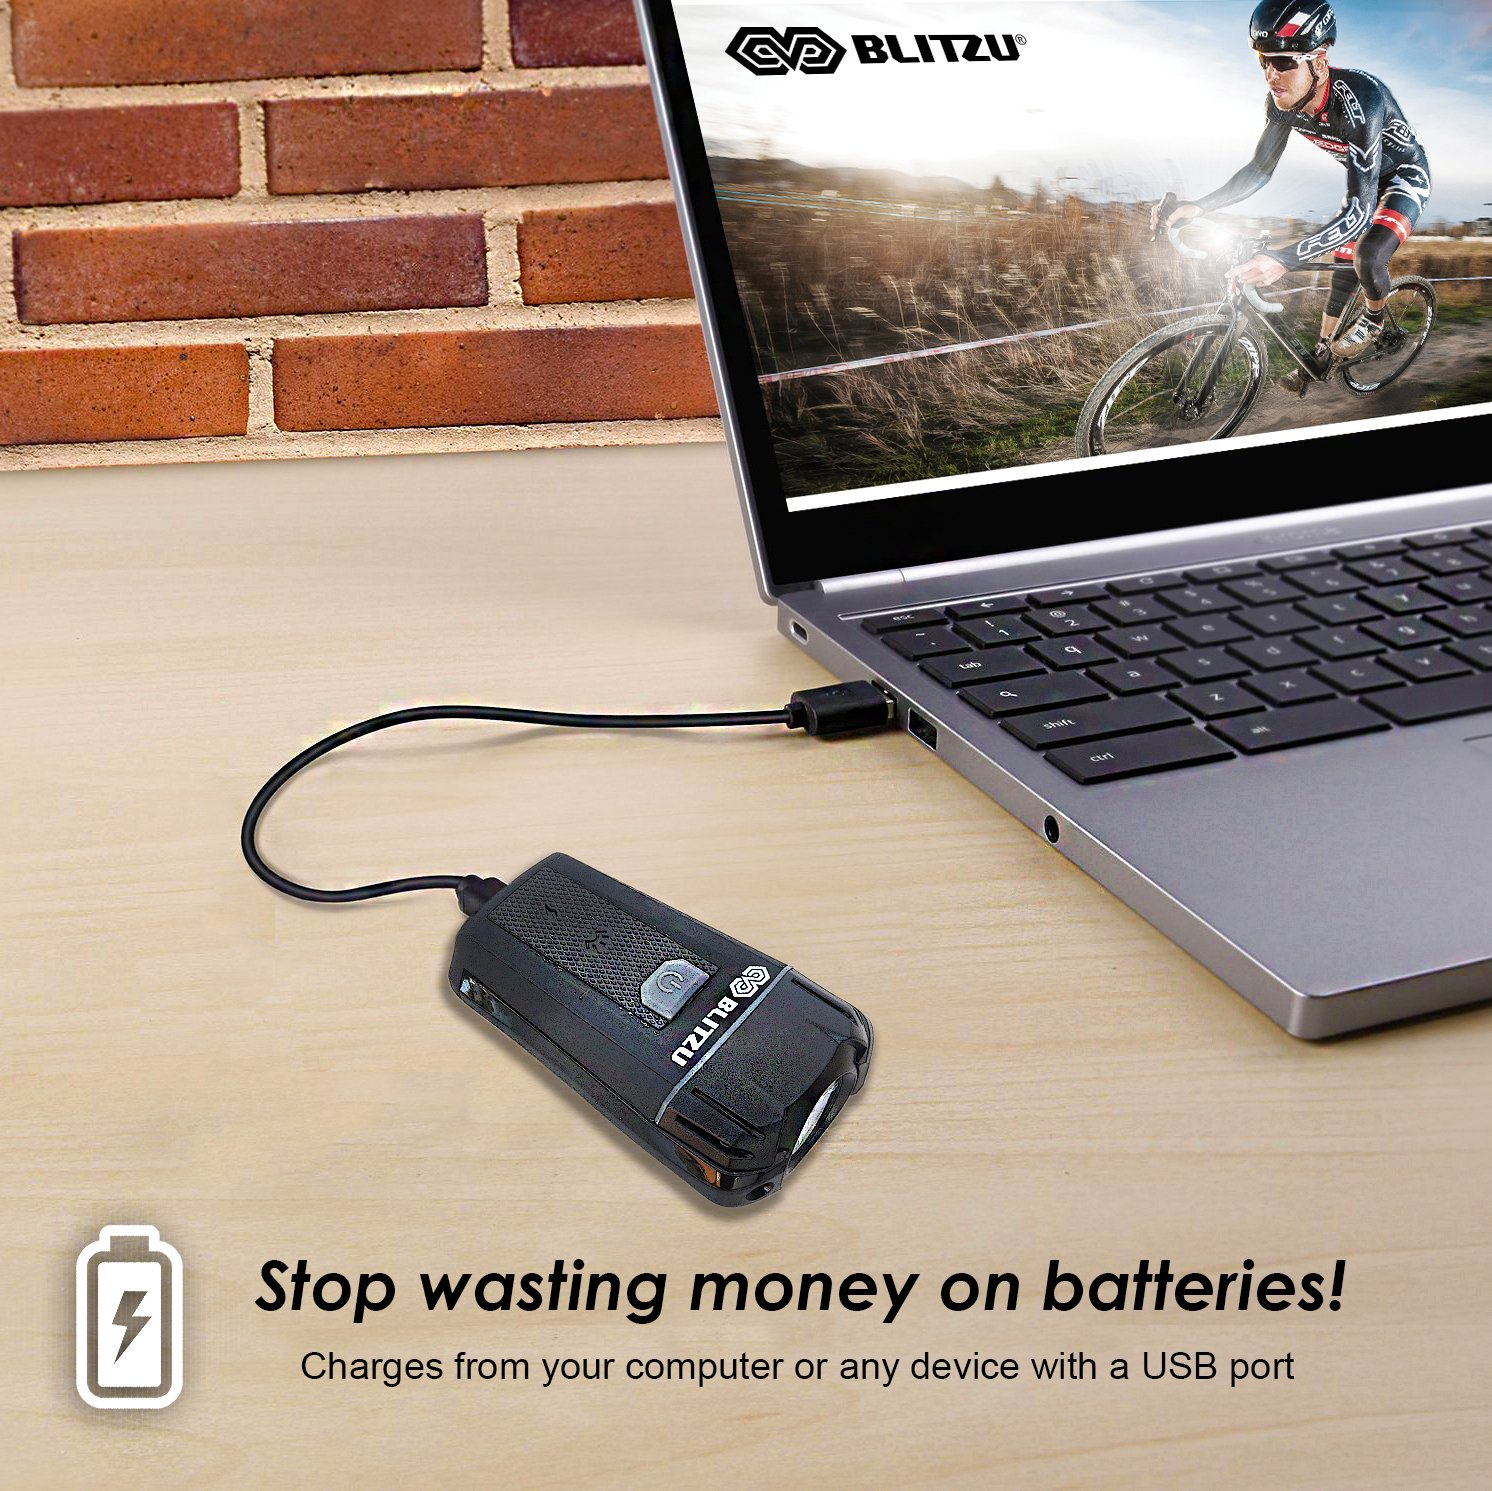 BLITZU Gator 380 USB Rechargeable Bike Light Set POWERFUL Lumens Bicycle Headlight FREE TAIL LIGHT, LED Front and Back Rear Lights Easy To Install for Kids Men Women Road Cycling Safety Flashlight by BLITZU (Image #3)